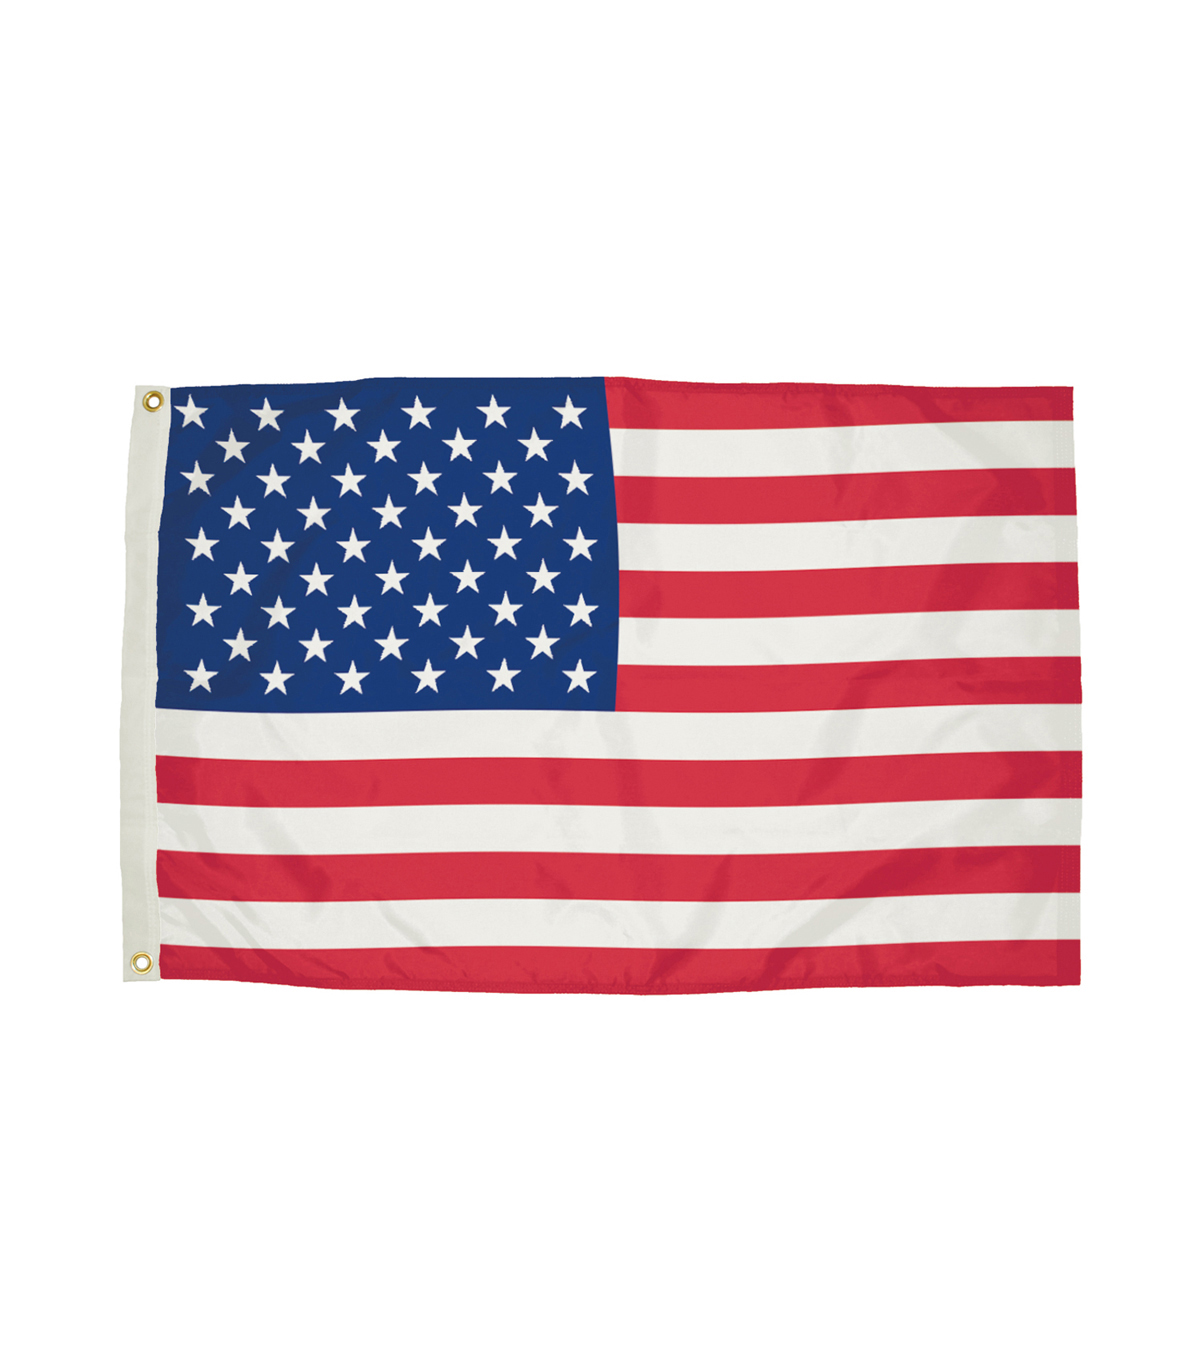 FlagZone Durawavez 3\u0027x5\u0027 Nylon Outdoor U.S. Flag with Grommets